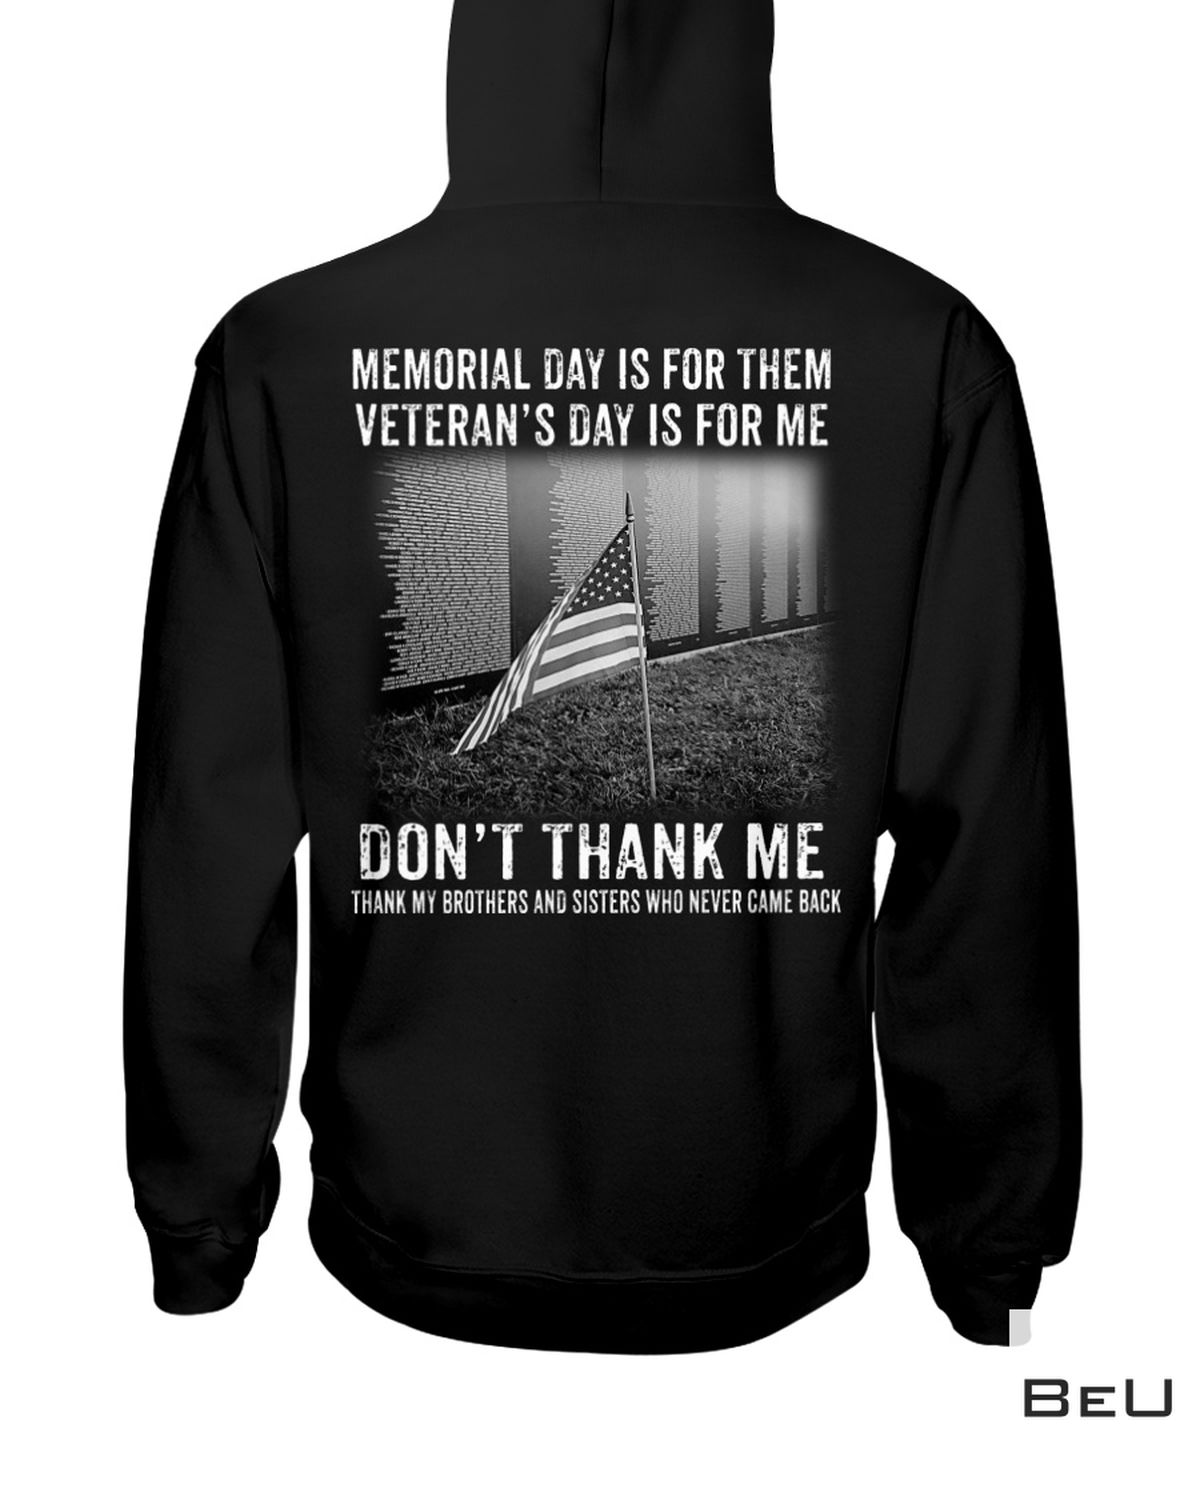 Funny Tee Memorial Day Is For Them Veteran's Day Is For Me Don't Thank Me Shirt, hoodie, tank top